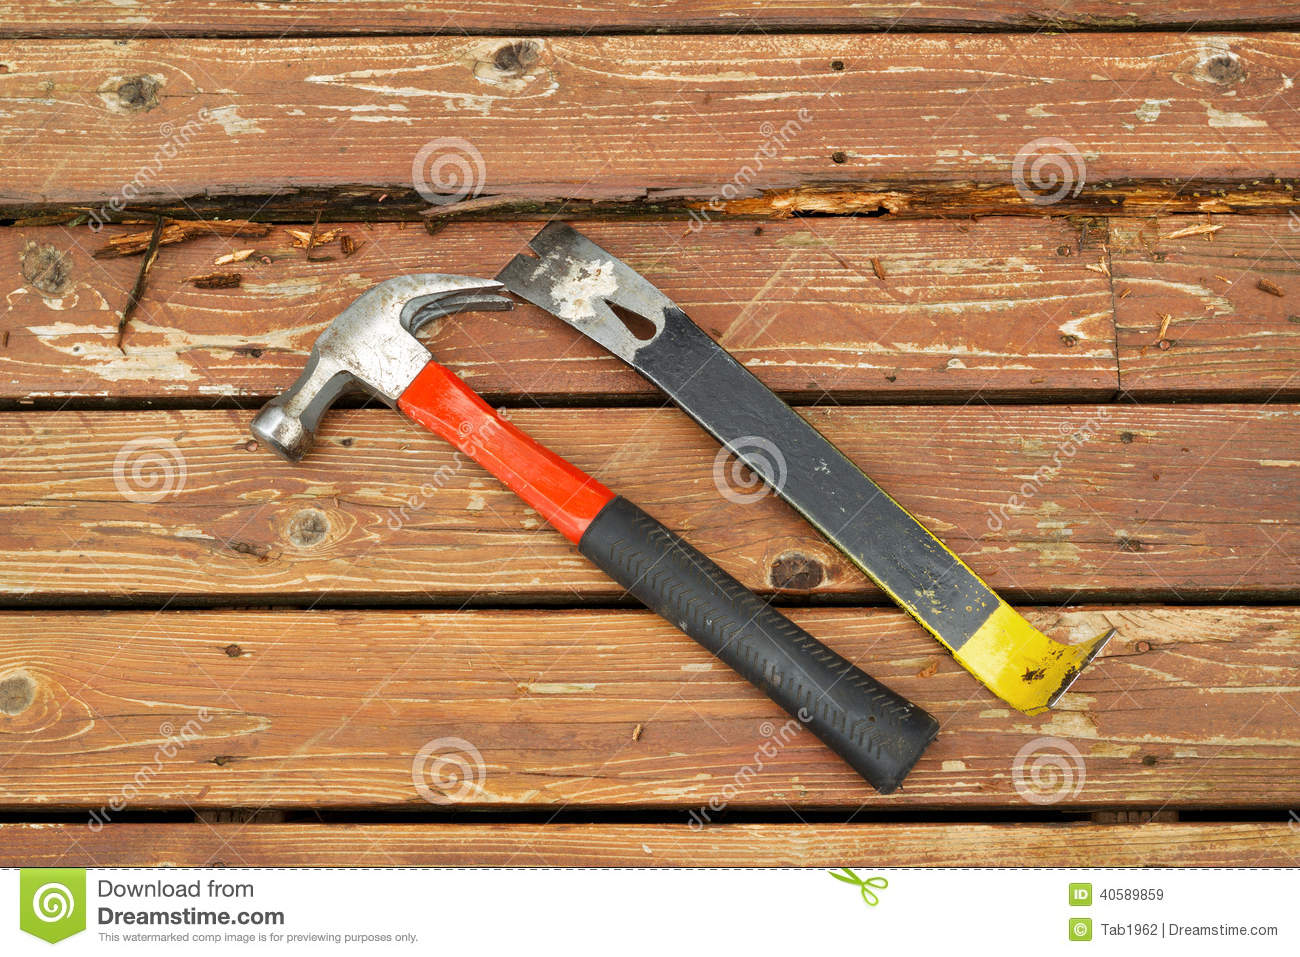 Deck tools bing images